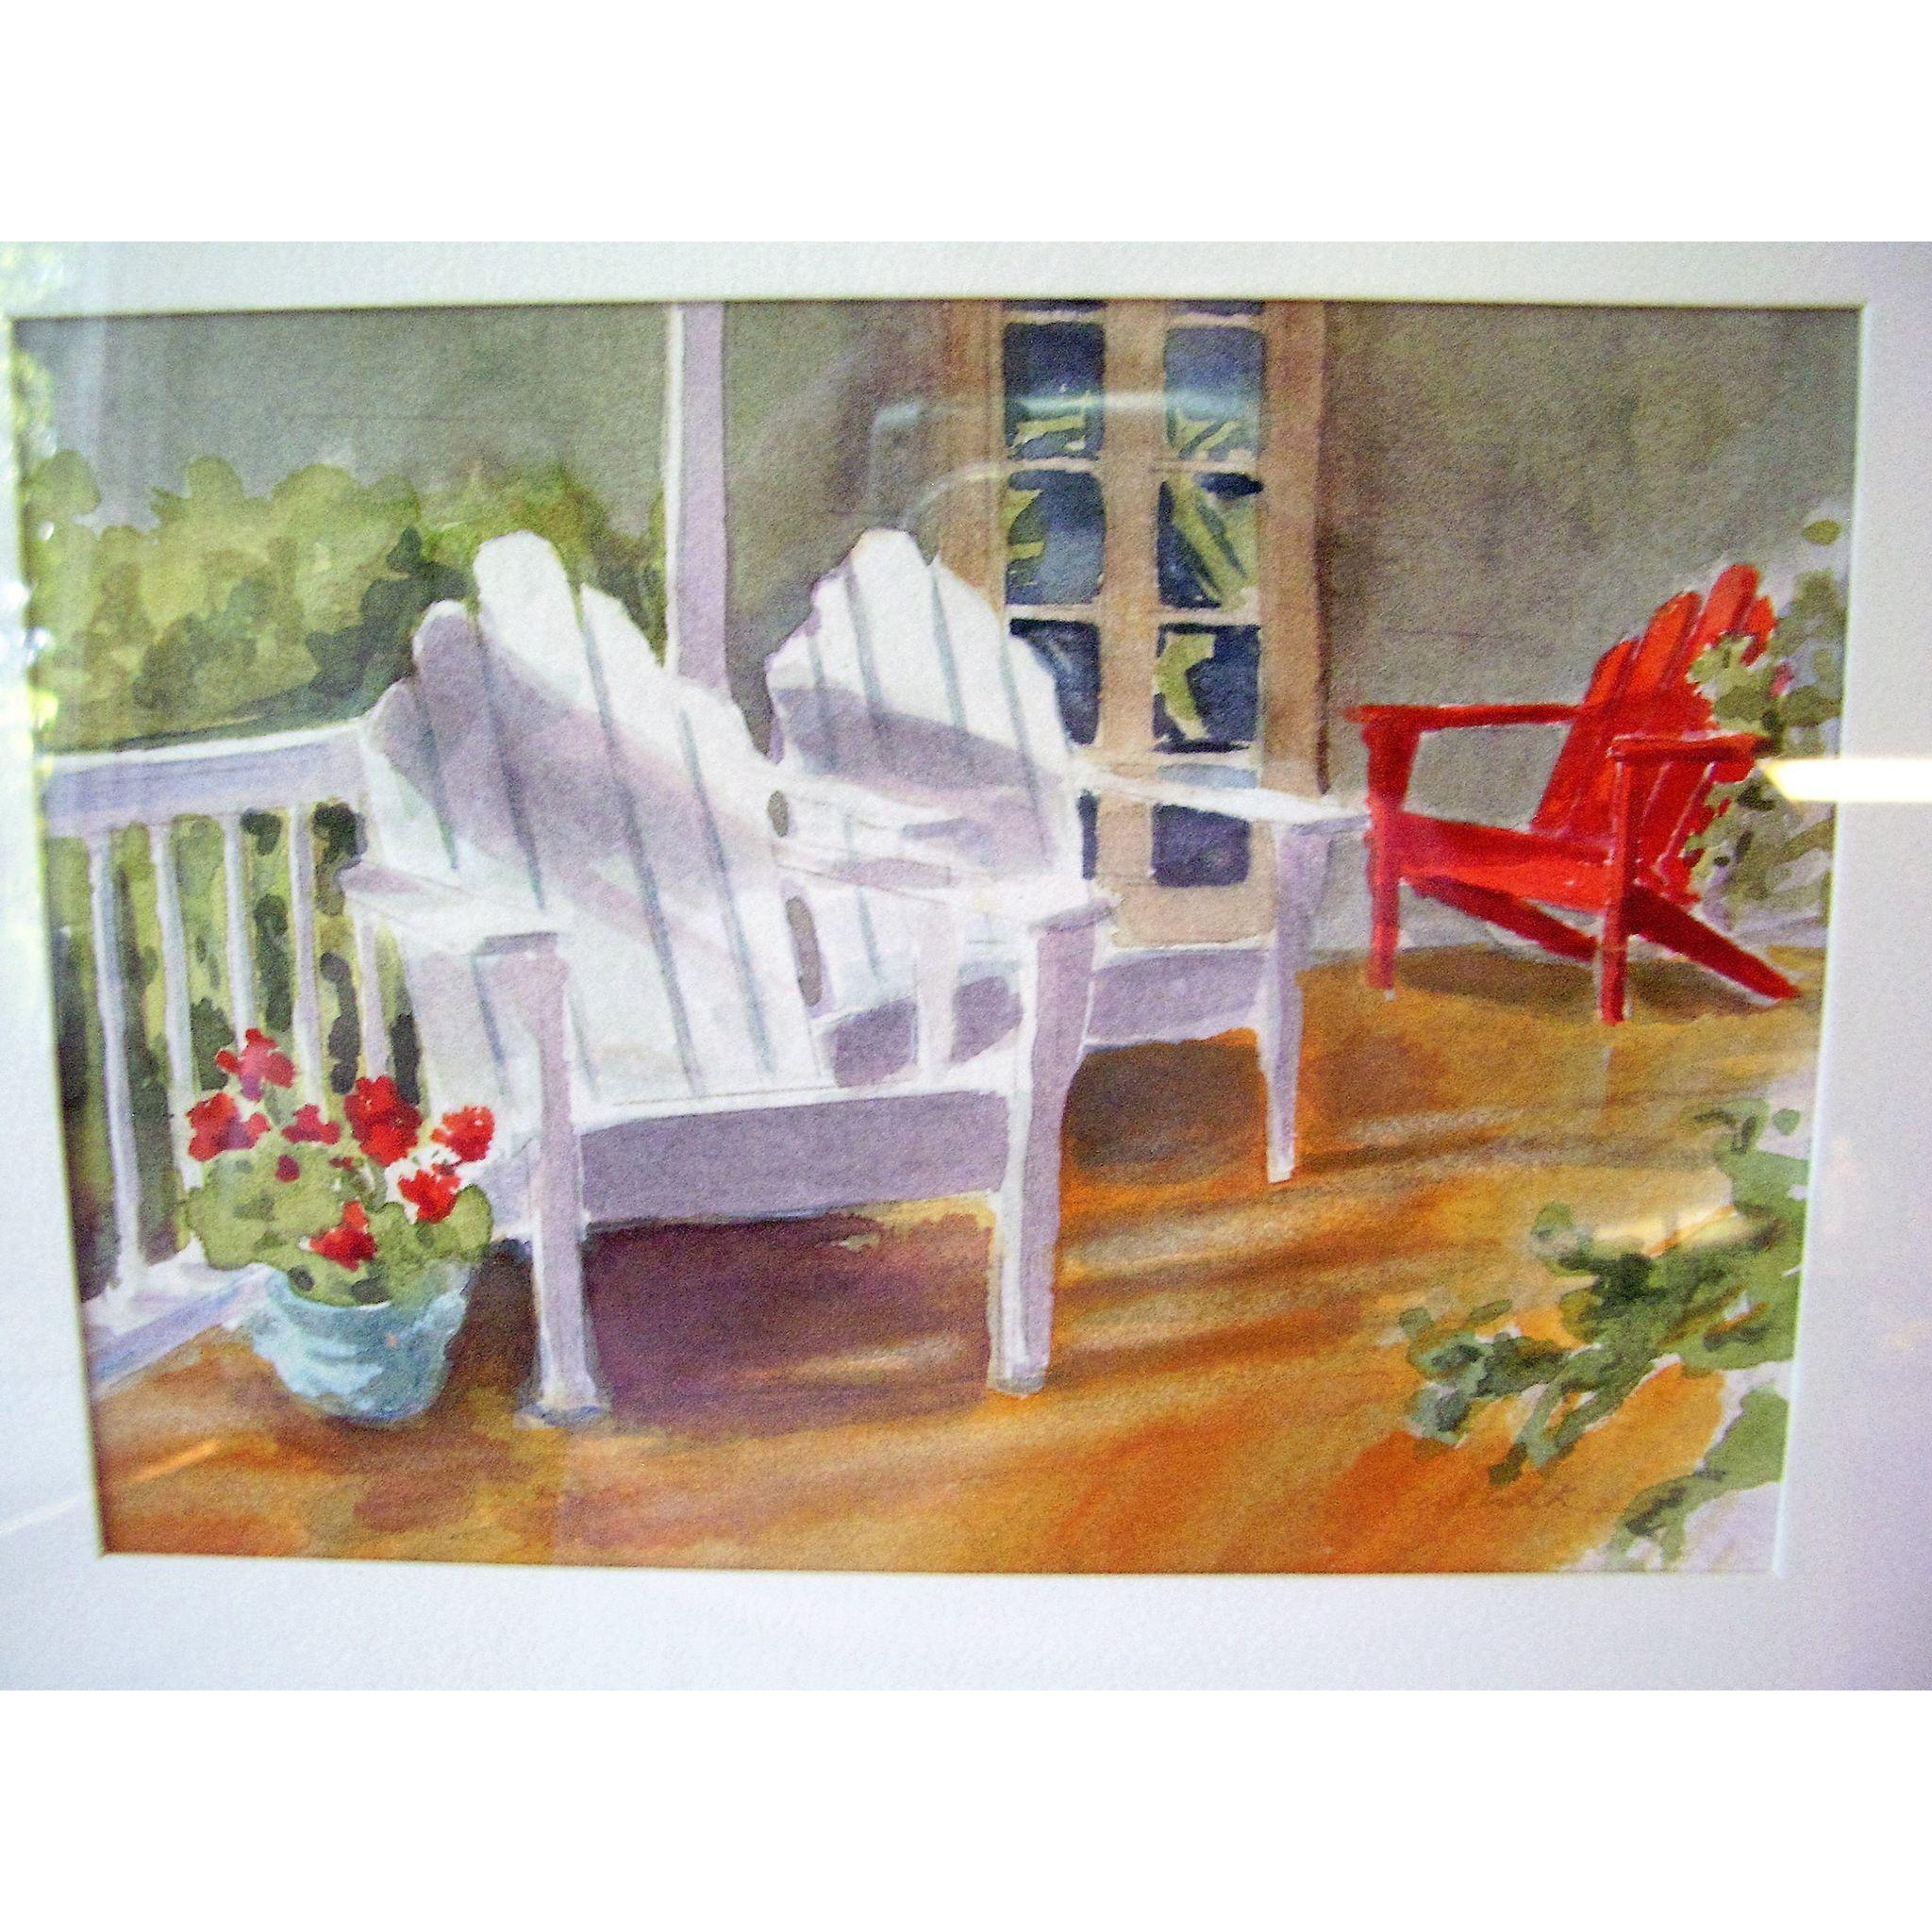 Connecticut watercolor artists directory - Original Watercolor Painting By N J Artist Alice Skidmore Culbreth Adirondack Chairs 12 X 10 Framed